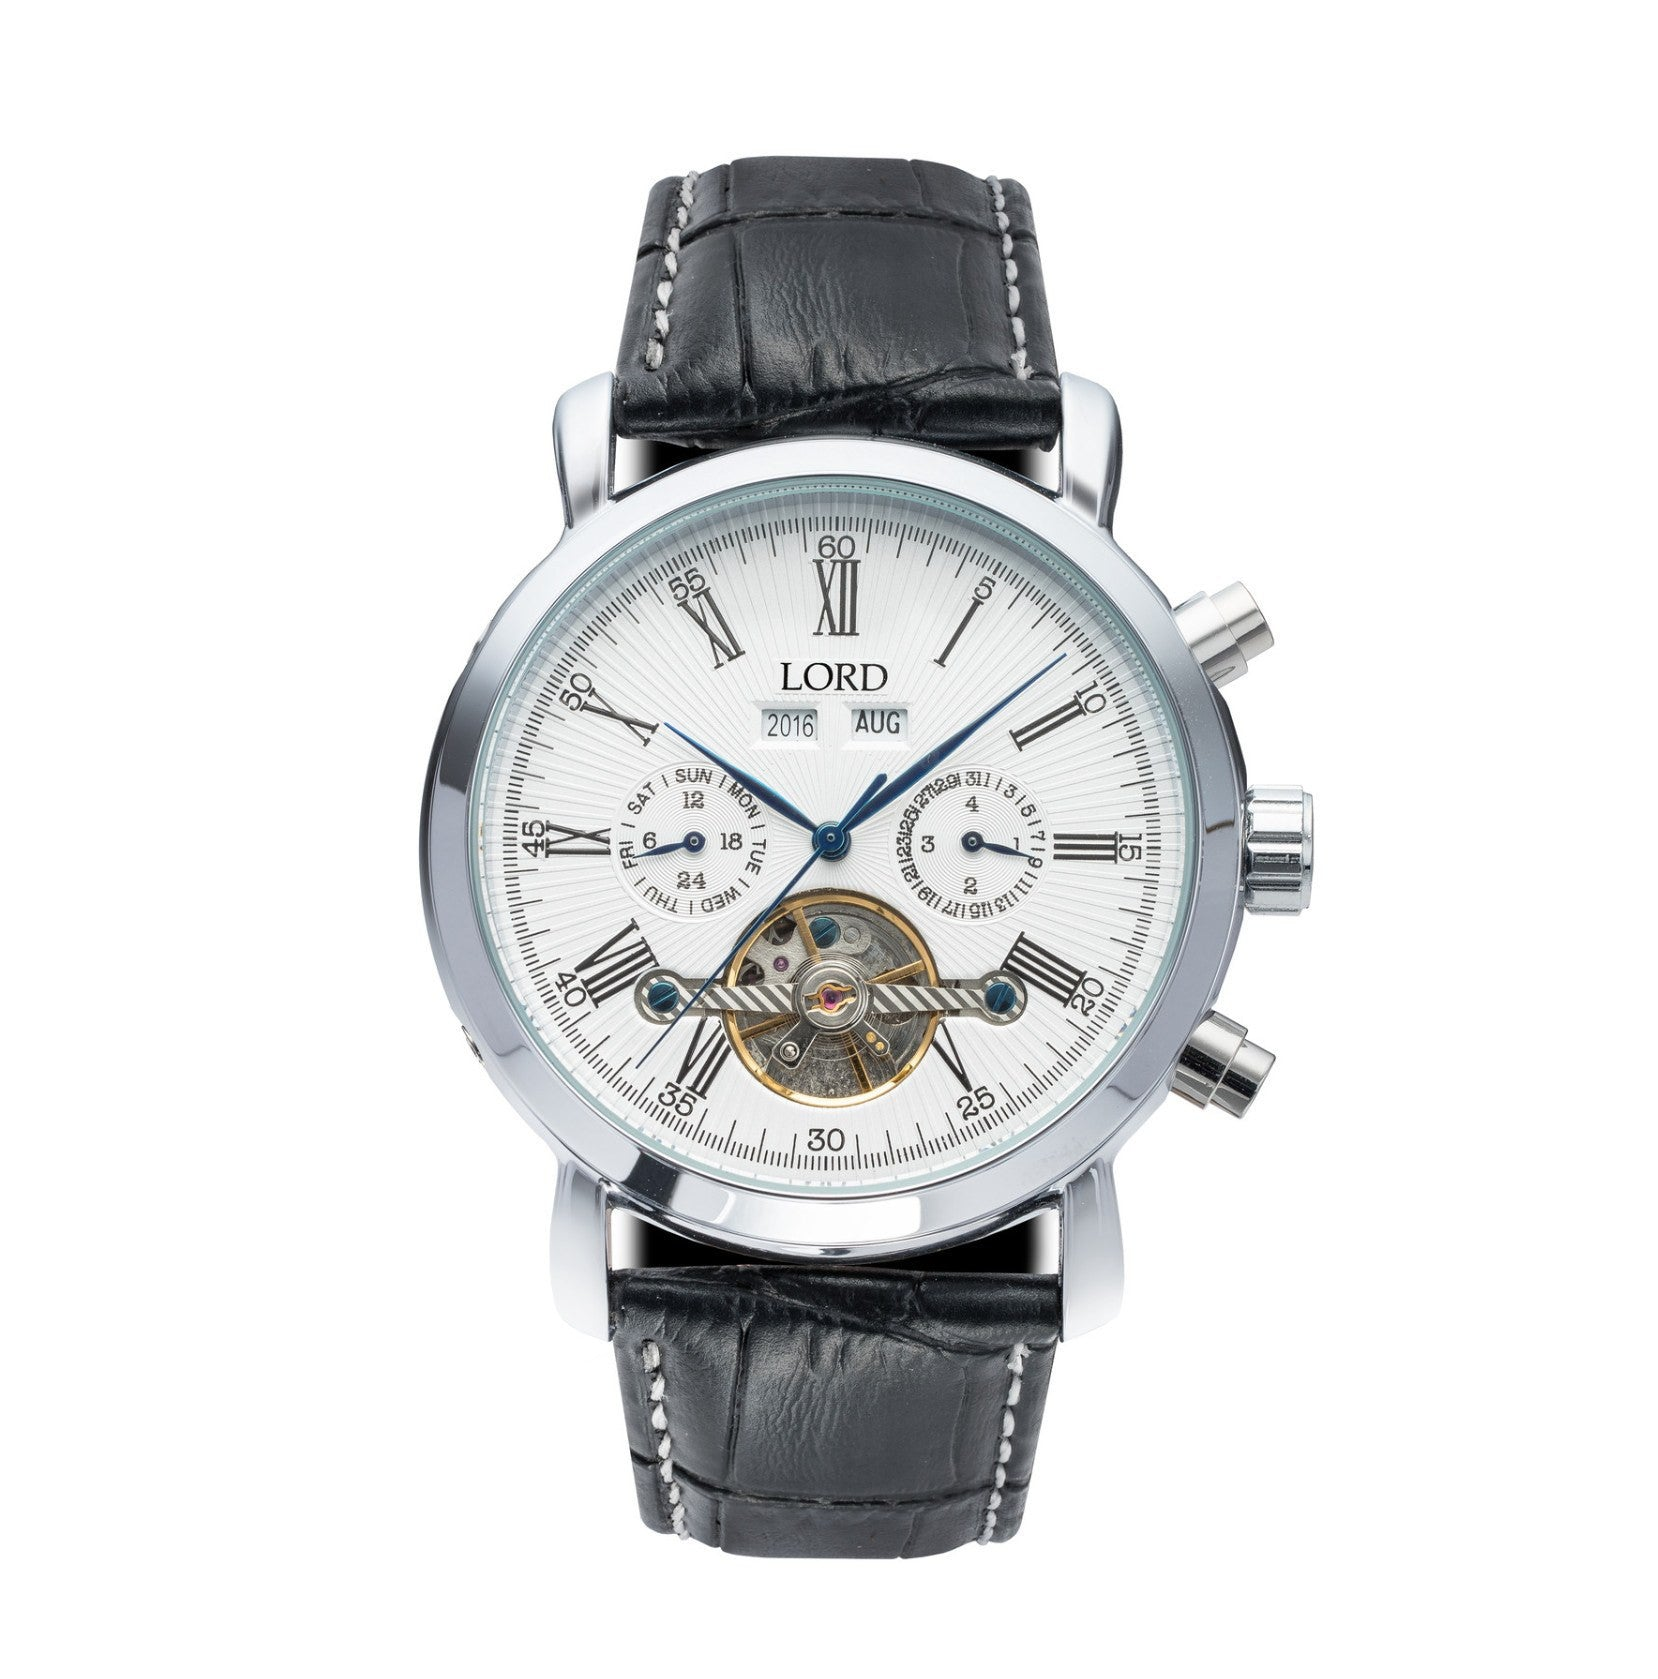 Kingston Silver White Watch   Men's Watches   Lord Timepieces